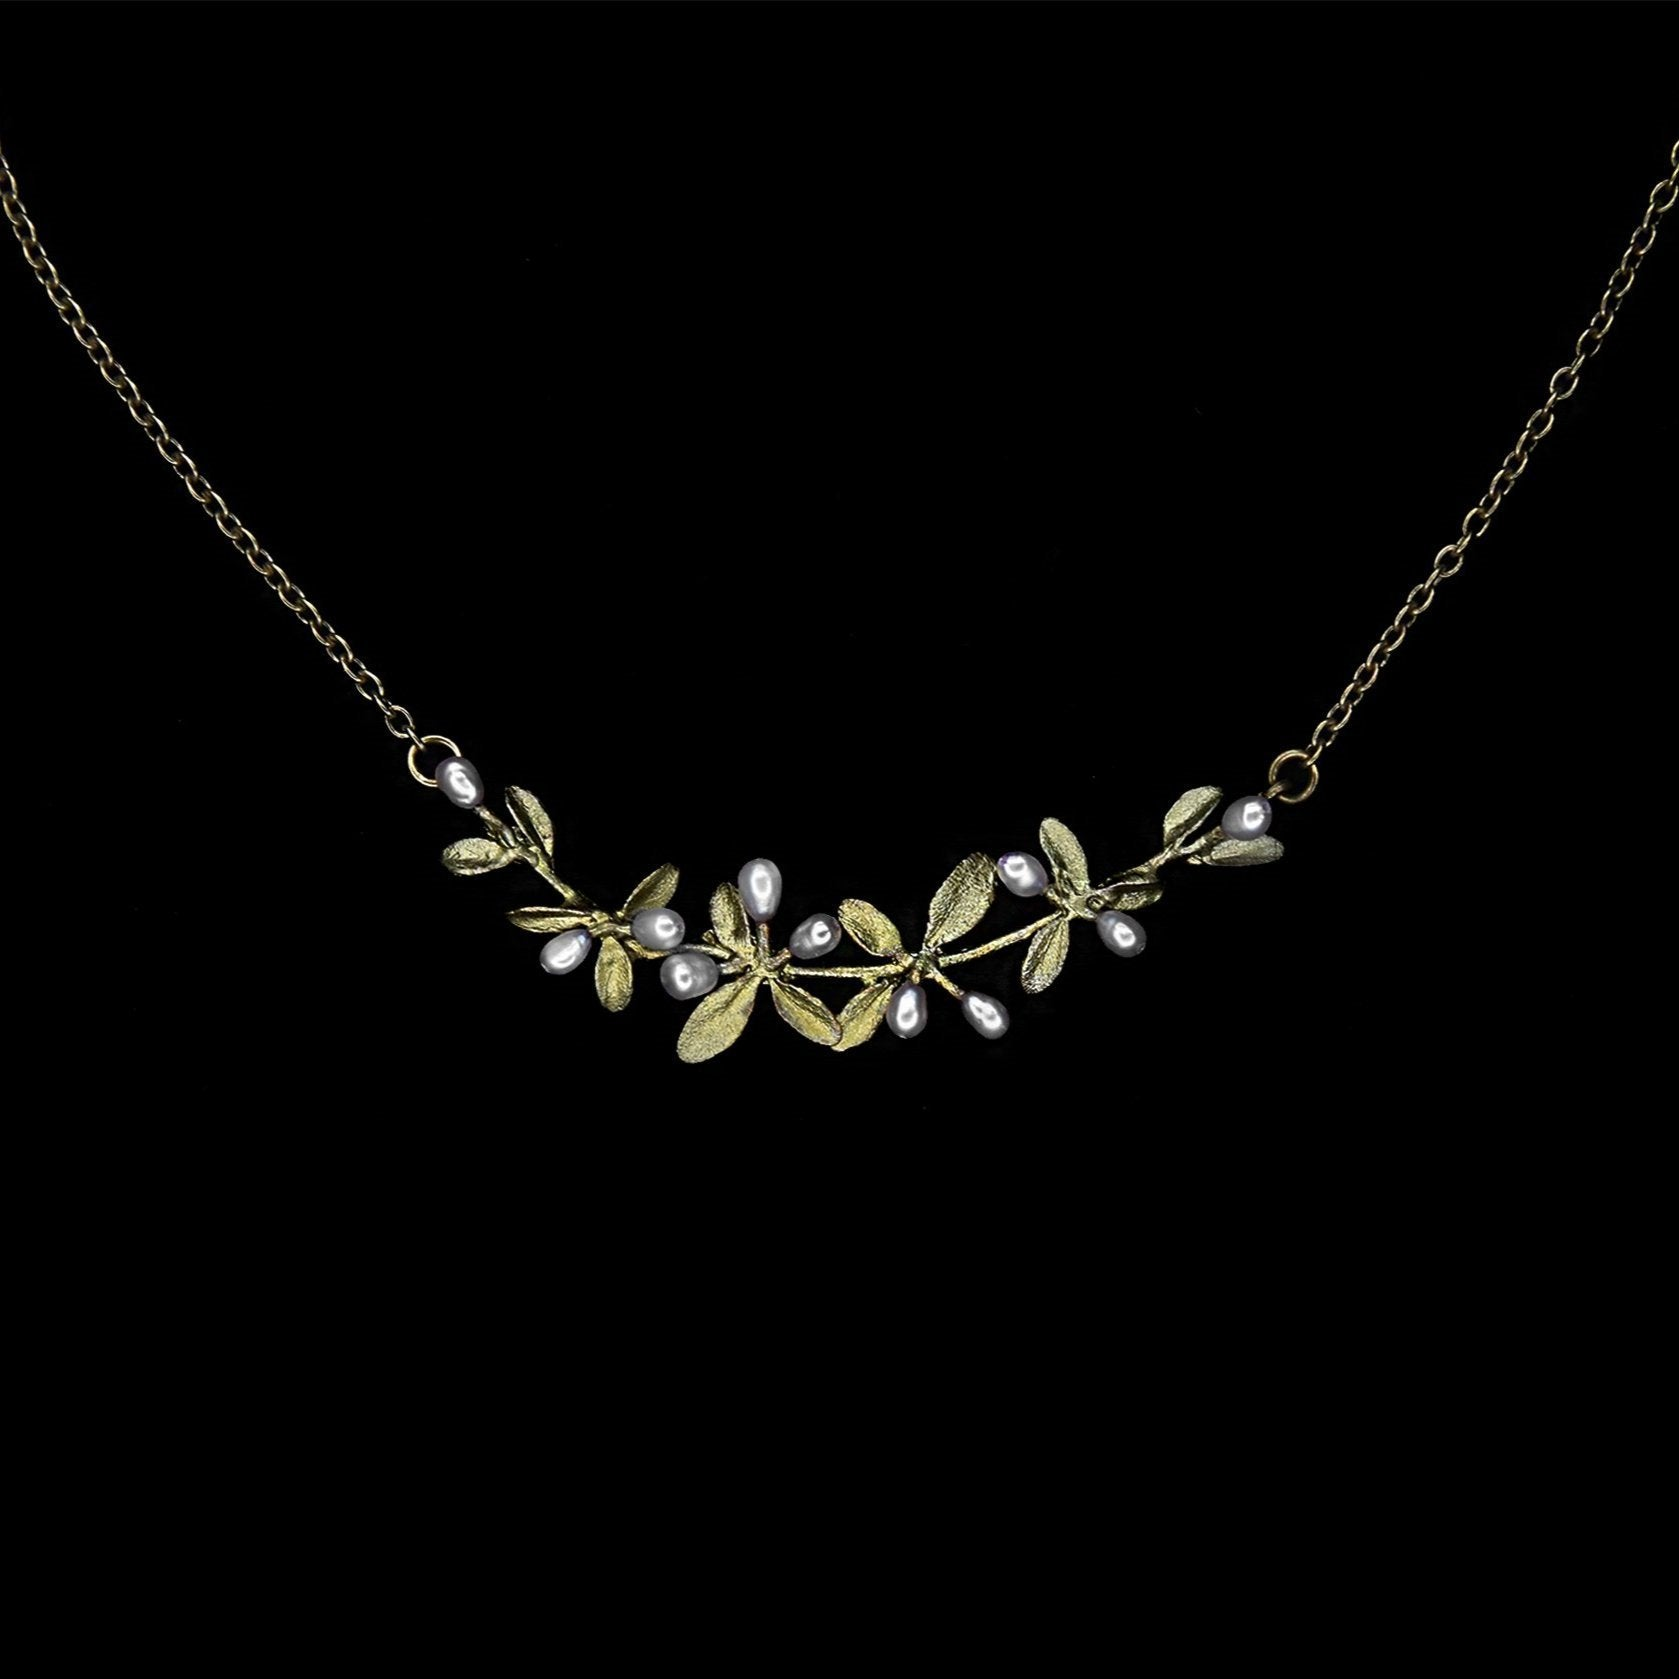 Flowering Thyme Necklace - Bar